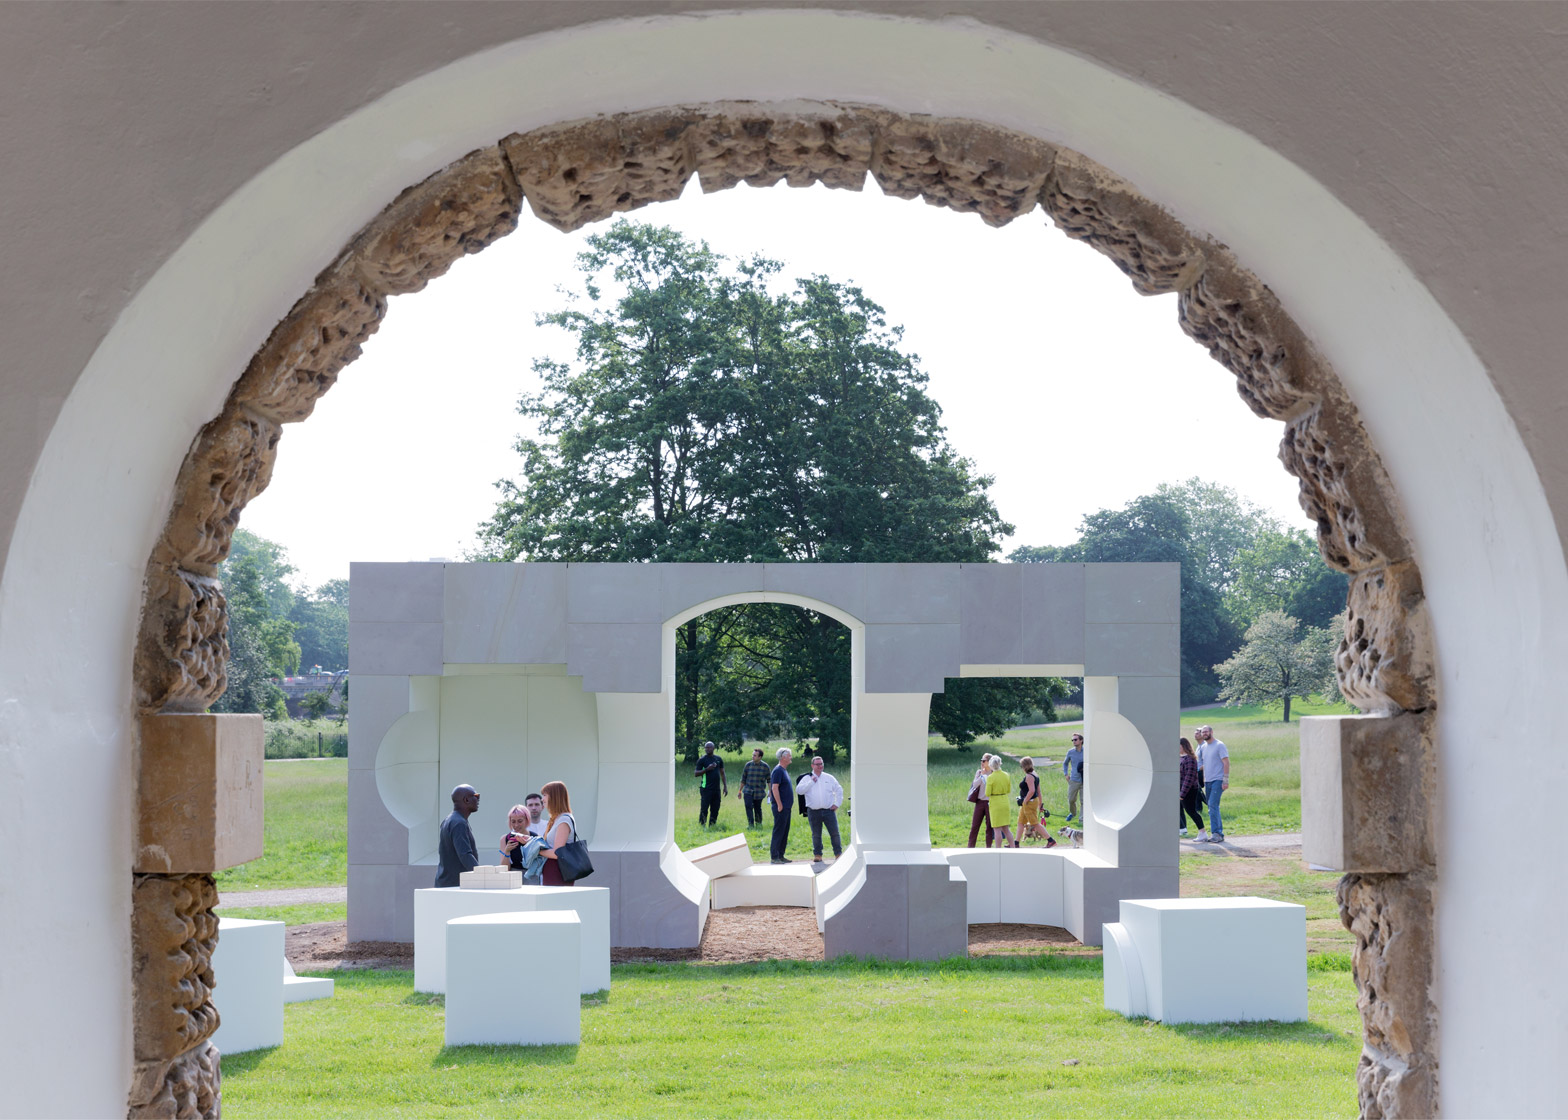 Awe Inspiring Architects Build Summer Houses At The Serpentine Gallery Largest Home Design Picture Inspirations Pitcheantrous